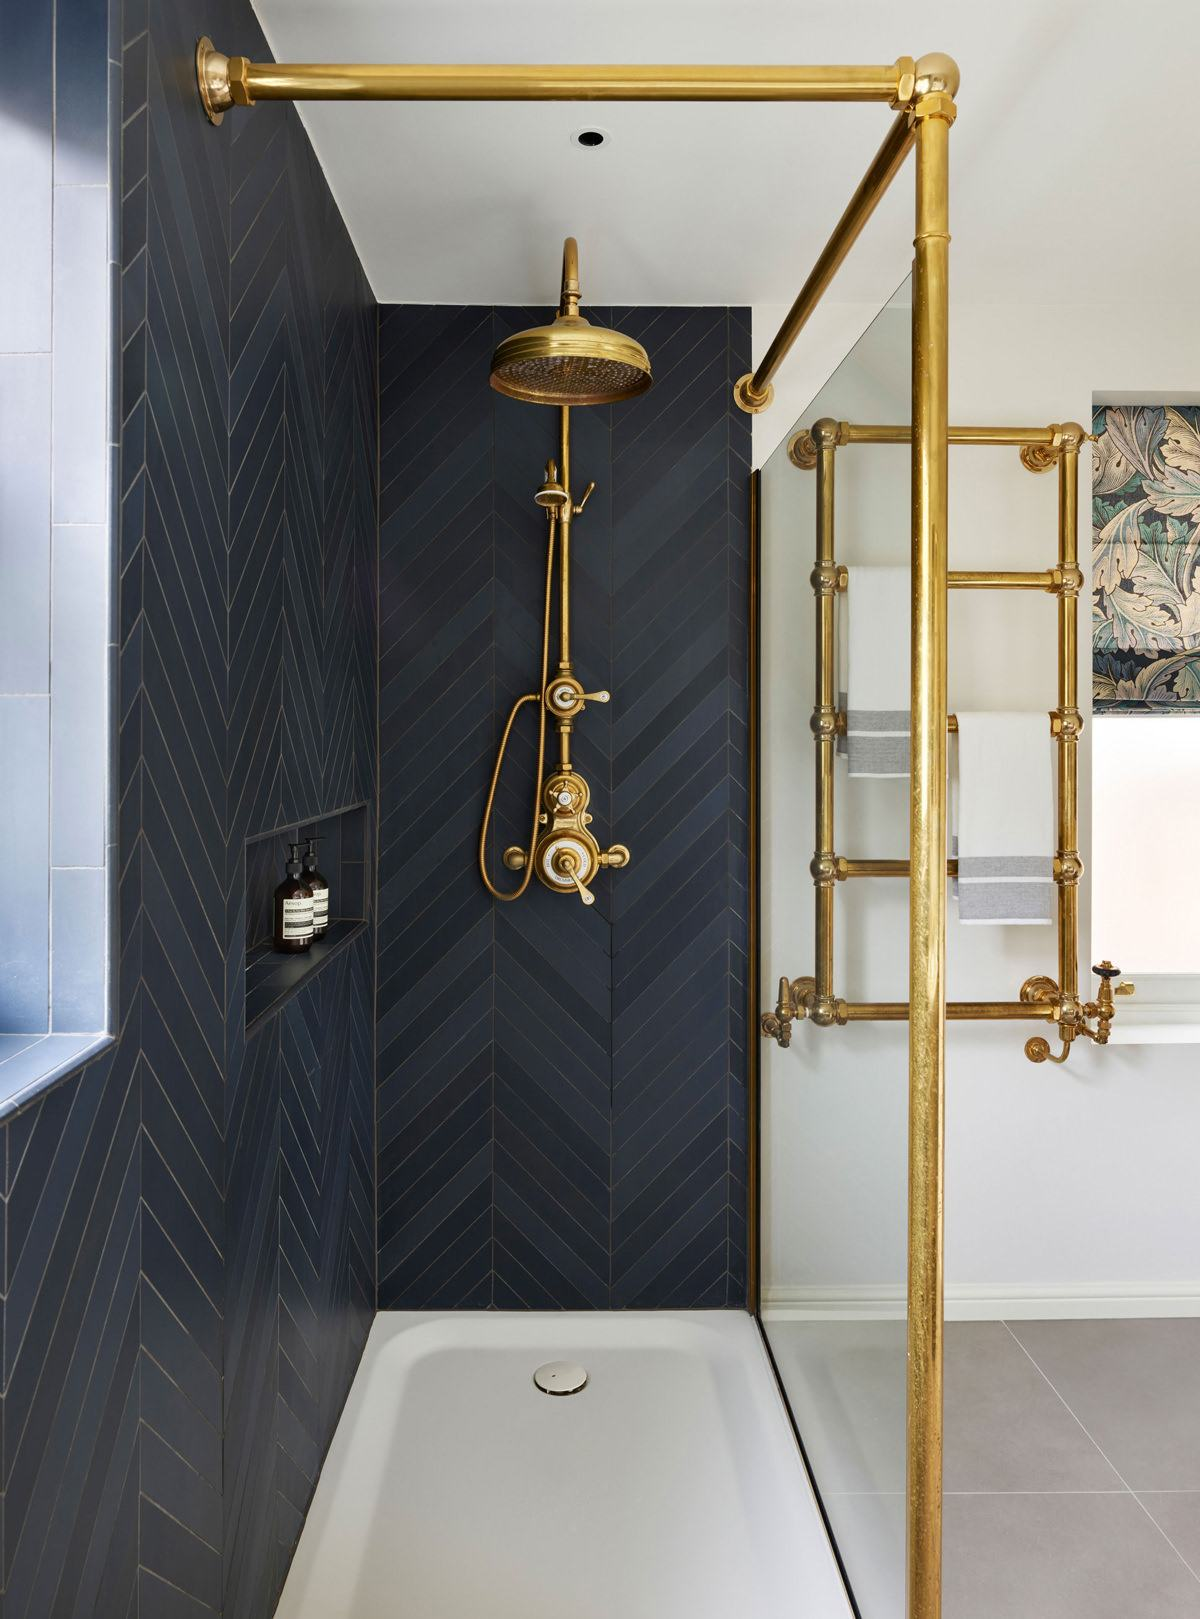 Gilded towel rail in steampunk styled bathroom